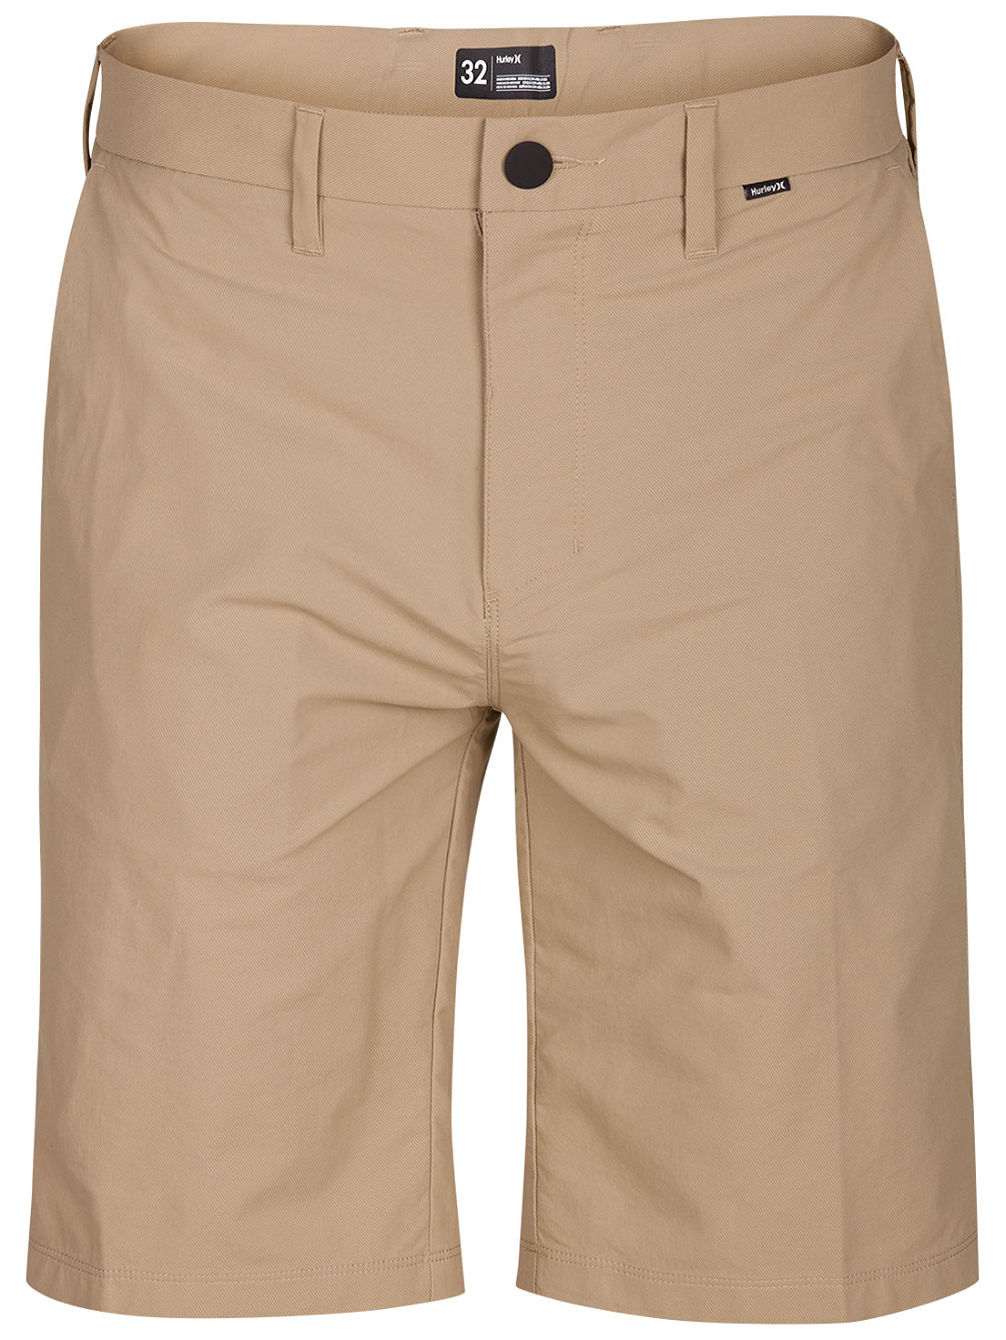 Dri-Fit Chino 21.5' Shorts